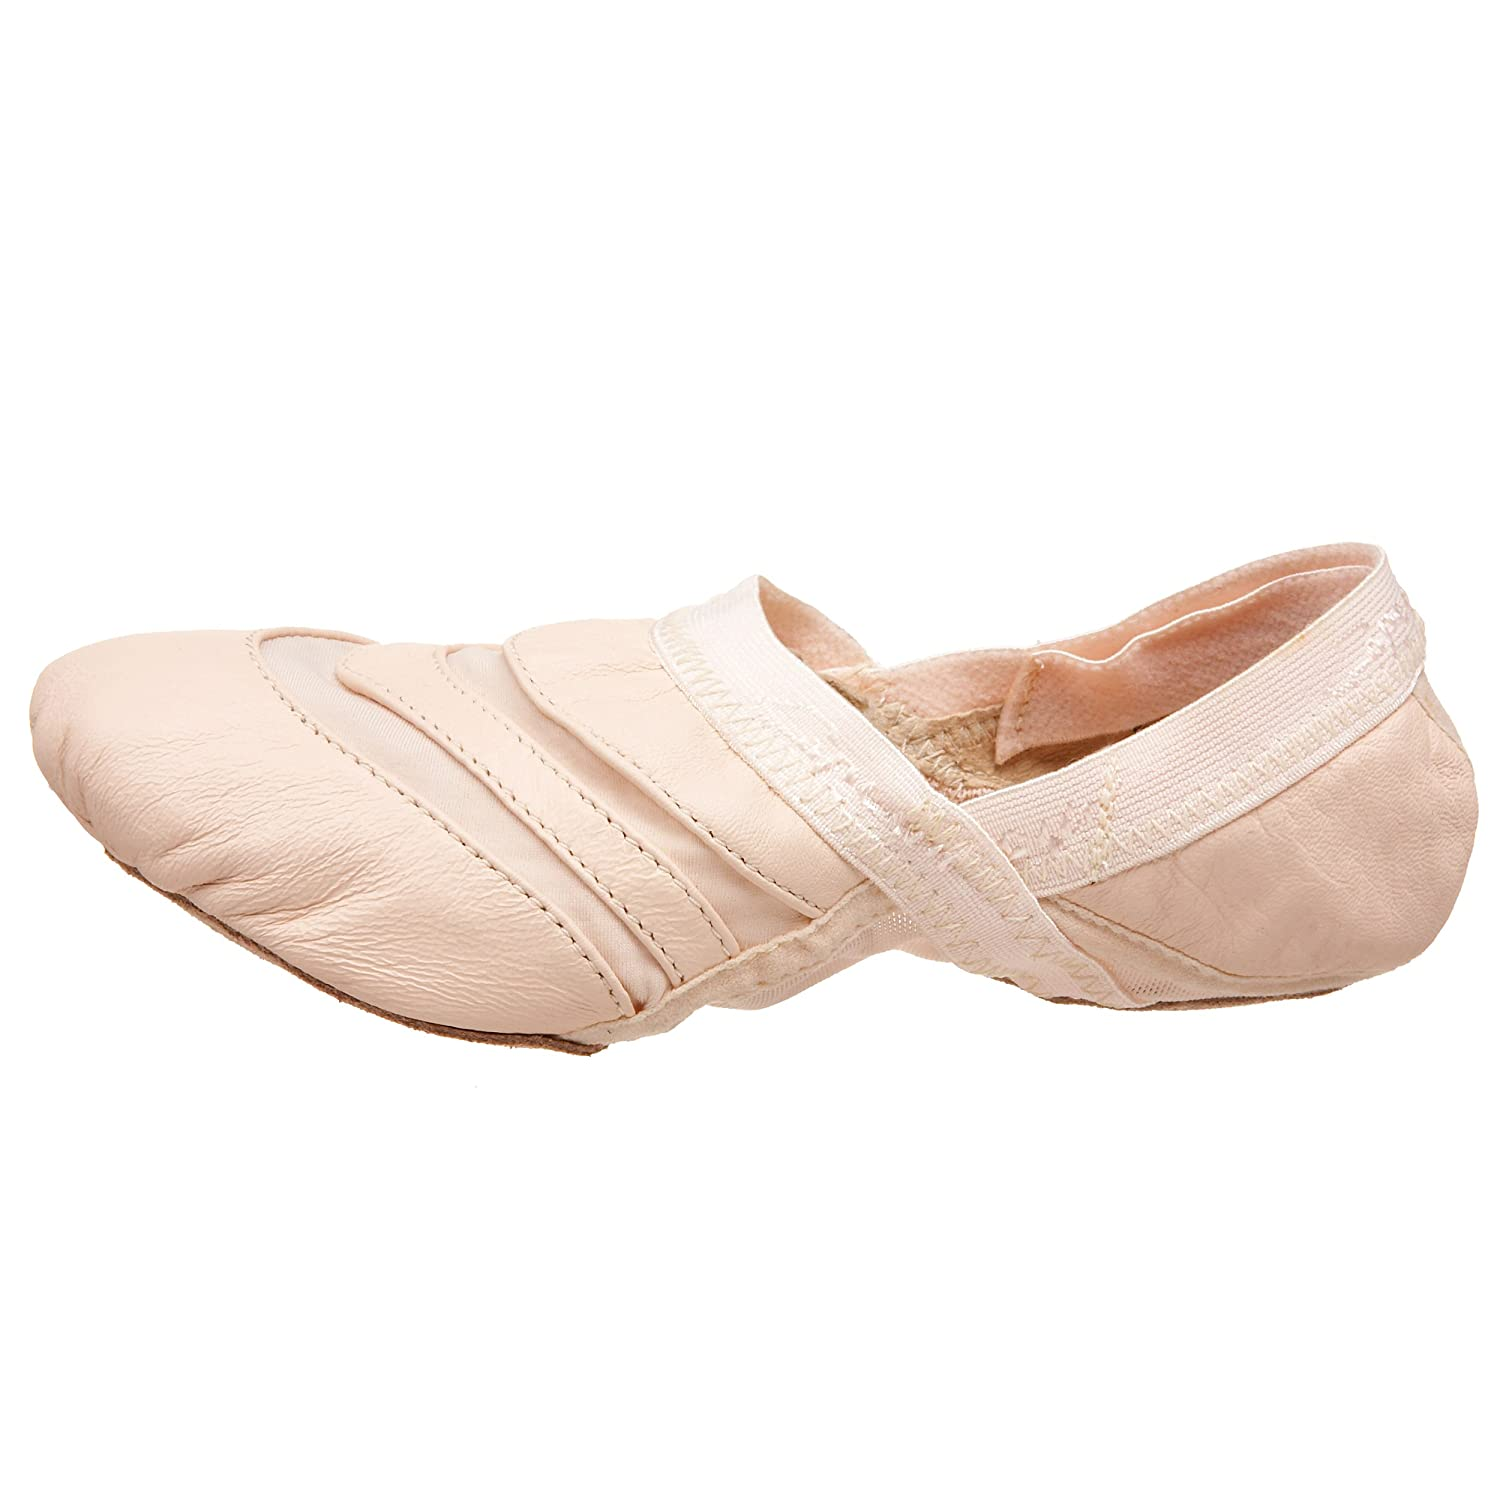 Capezio Women's FF01 Freeform Ballet Shoe B001ED17KY 10 W US|Light Pink